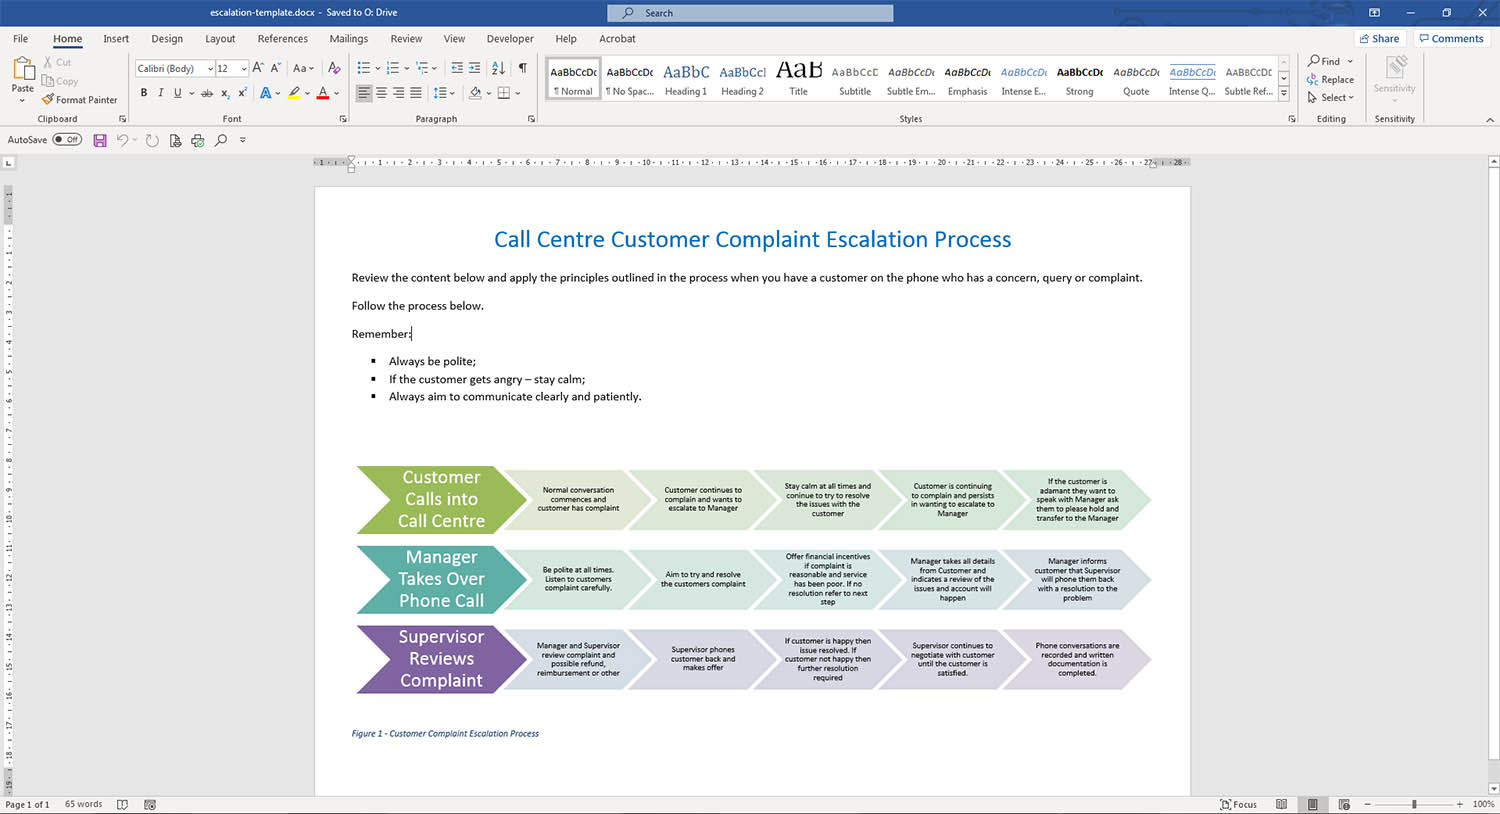 Image of Call Centre Customer Service Escalation Process Template - MS Word Format